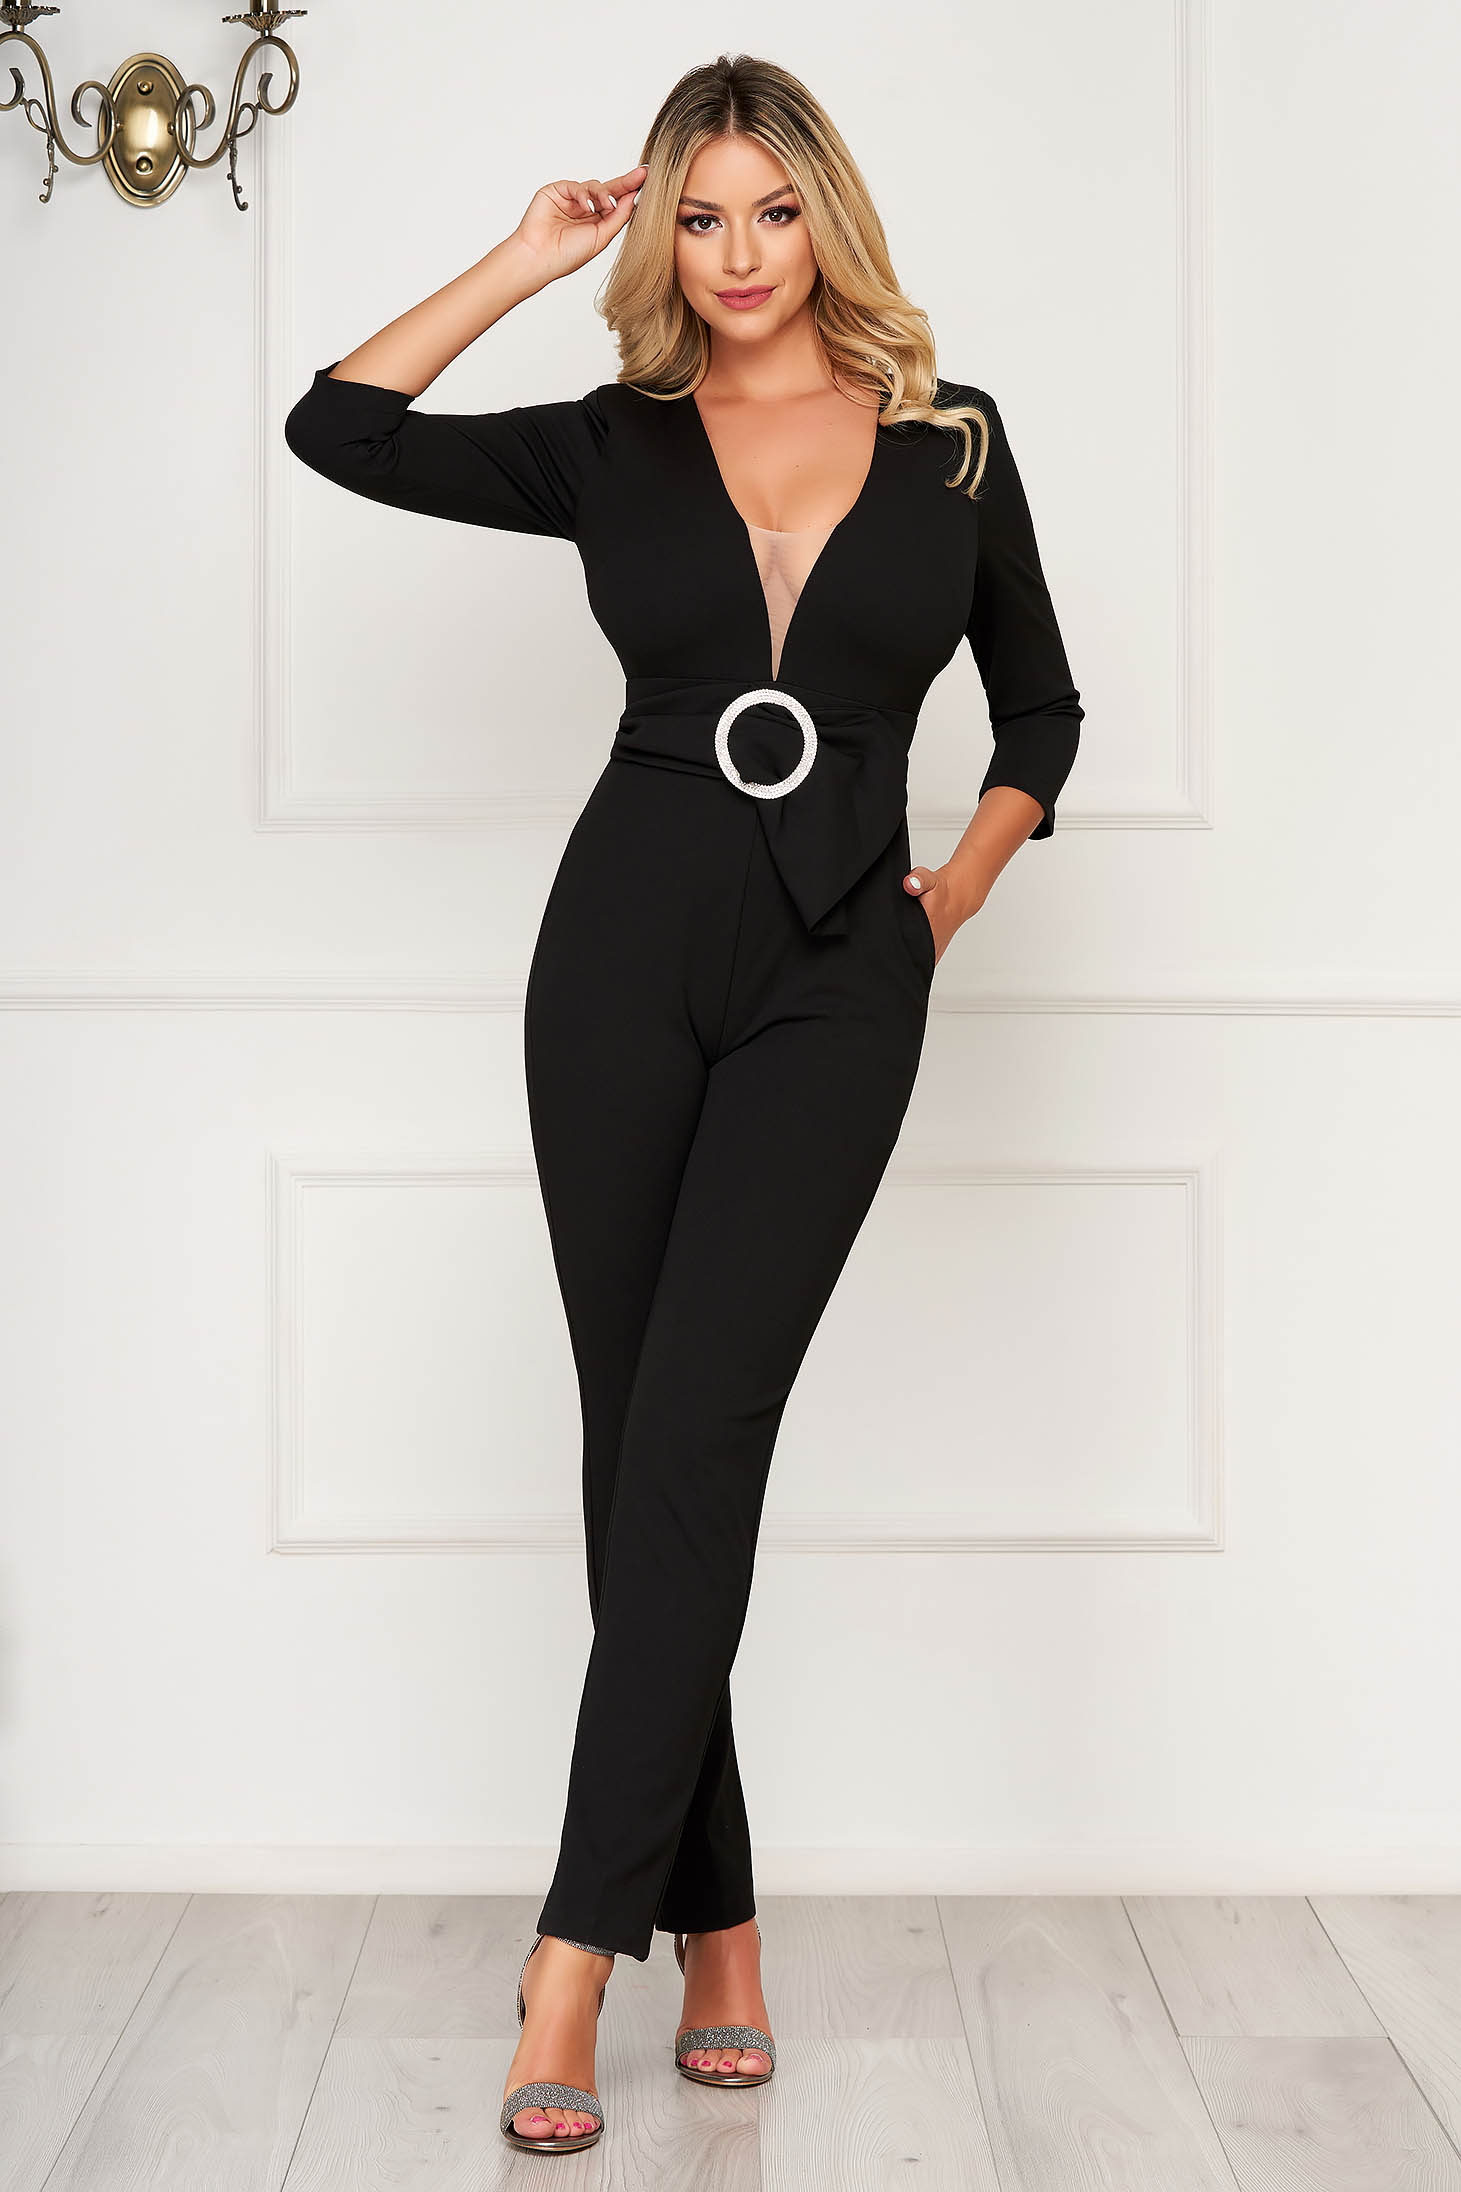 Jumpsuit black occasional with deep cleavage with v-neckline with 3/4 sleeves accessorized with breastpin